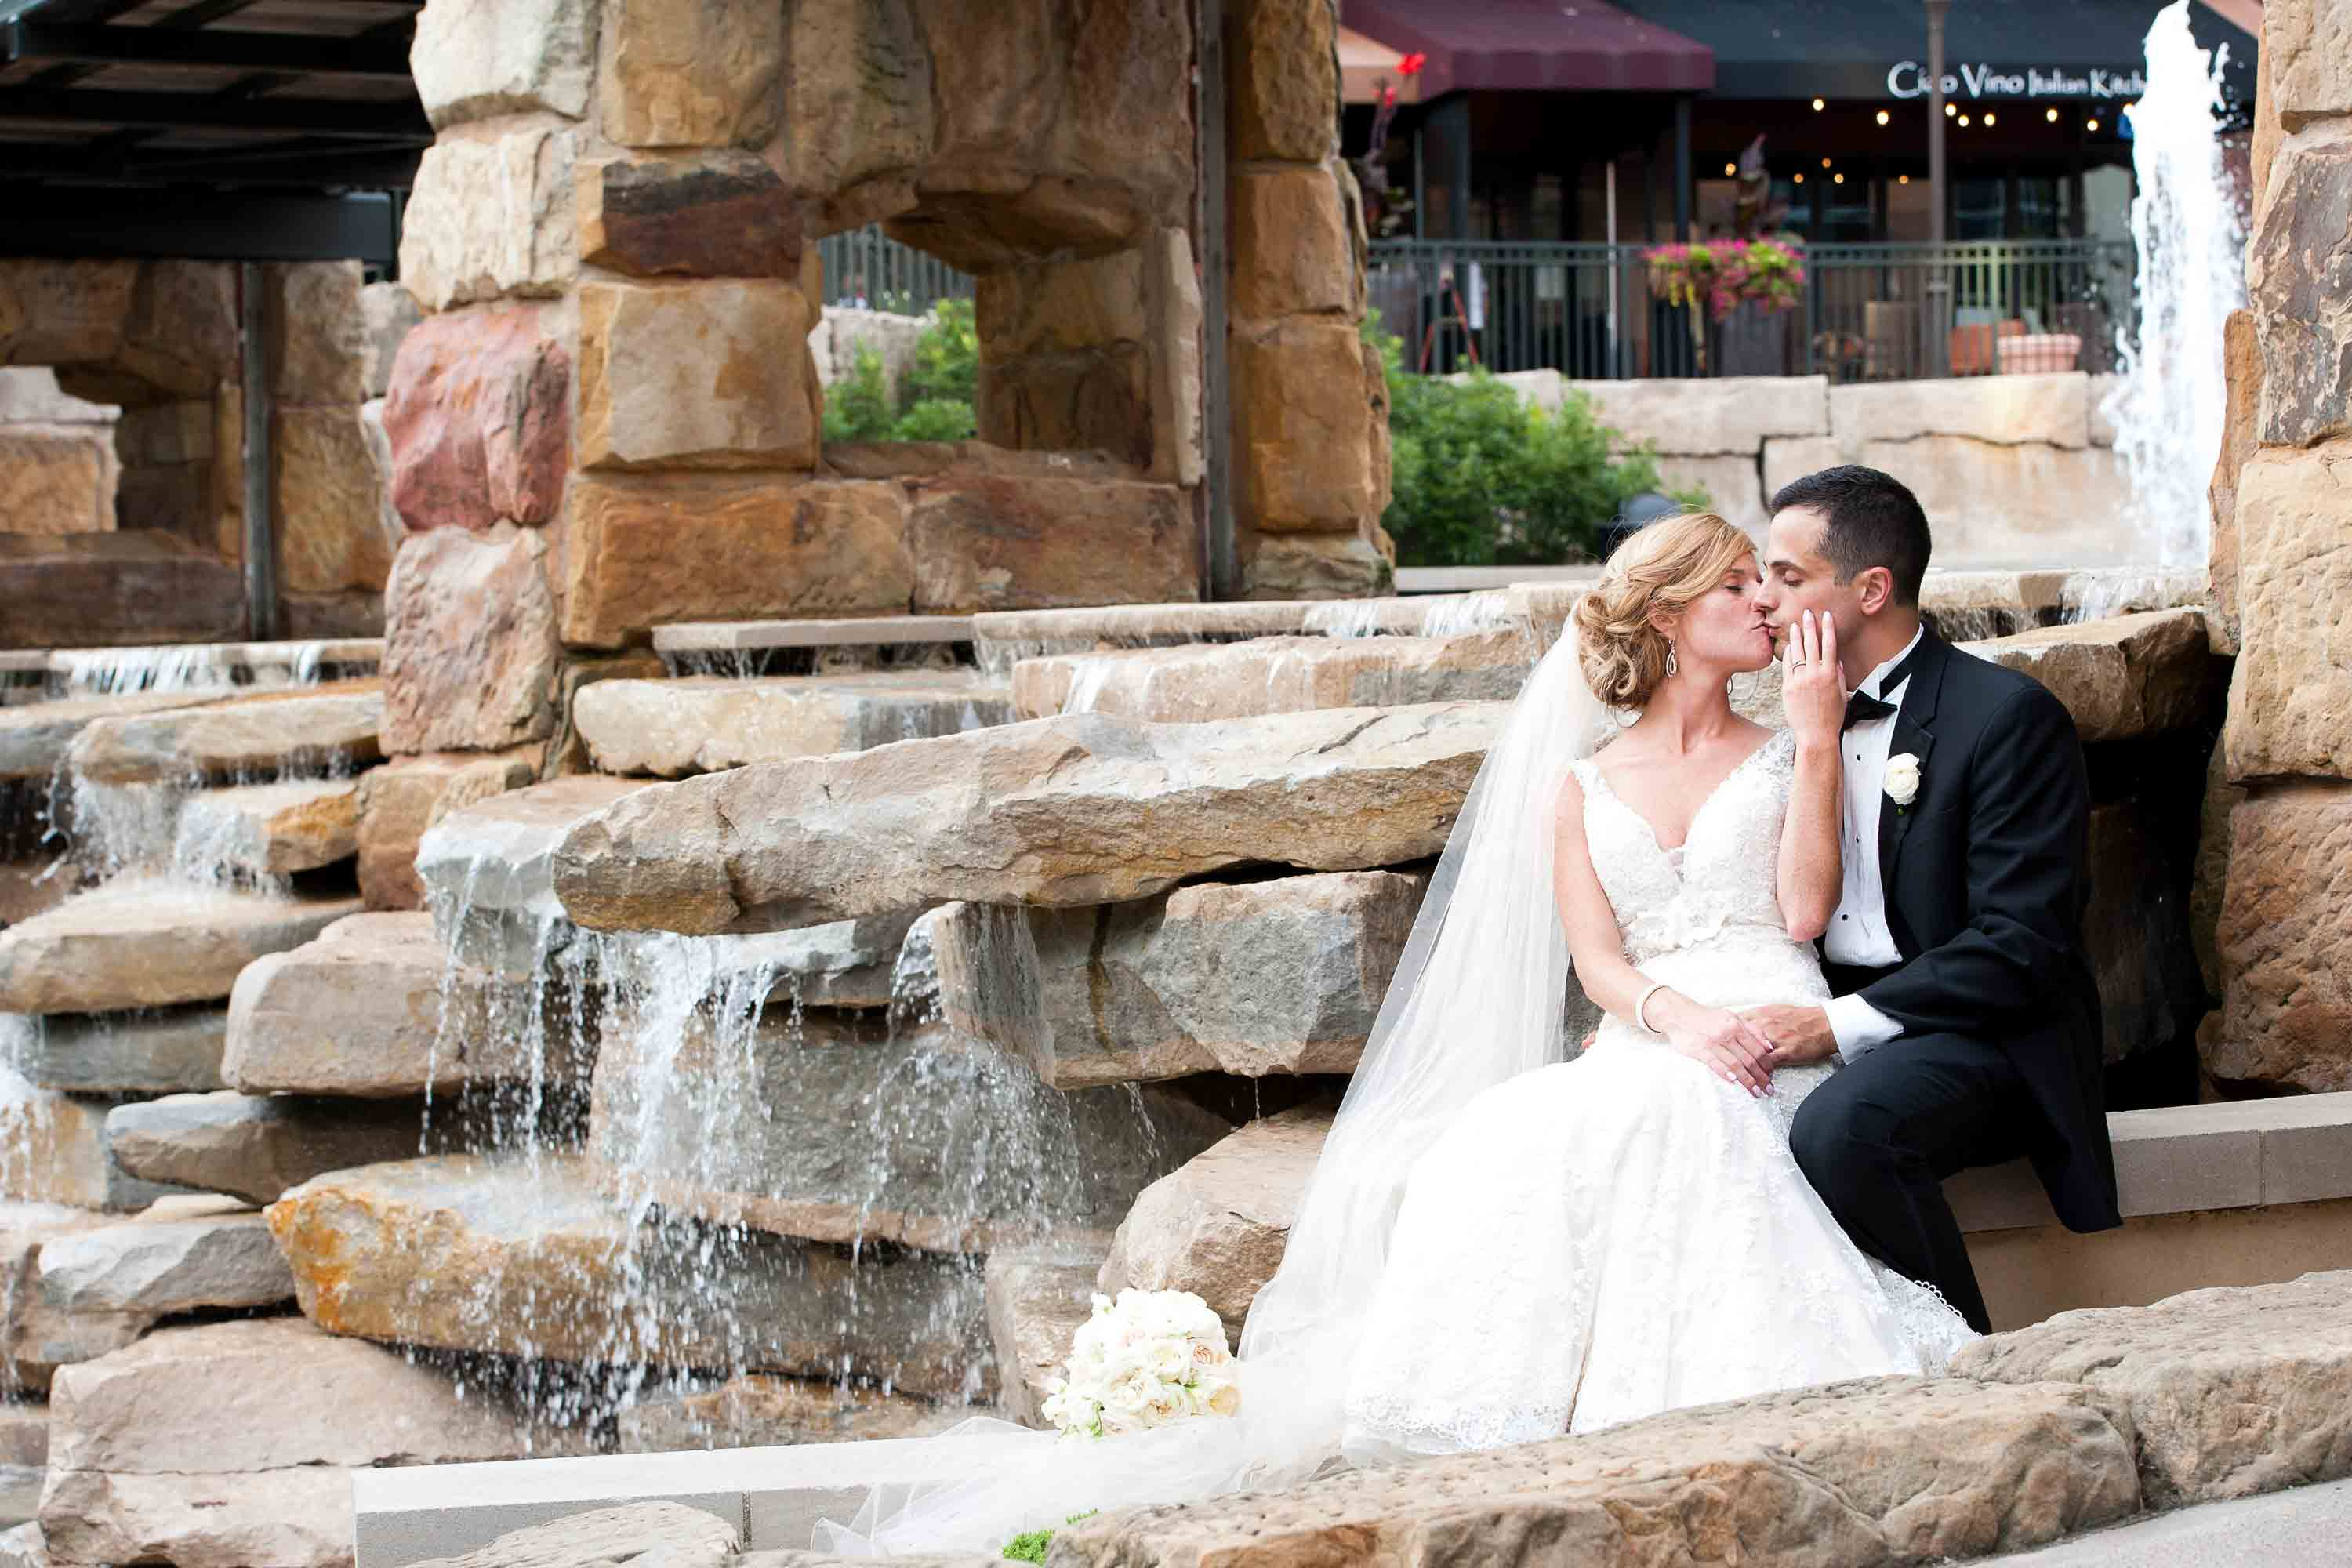 Newlyweds Fountain Kiss